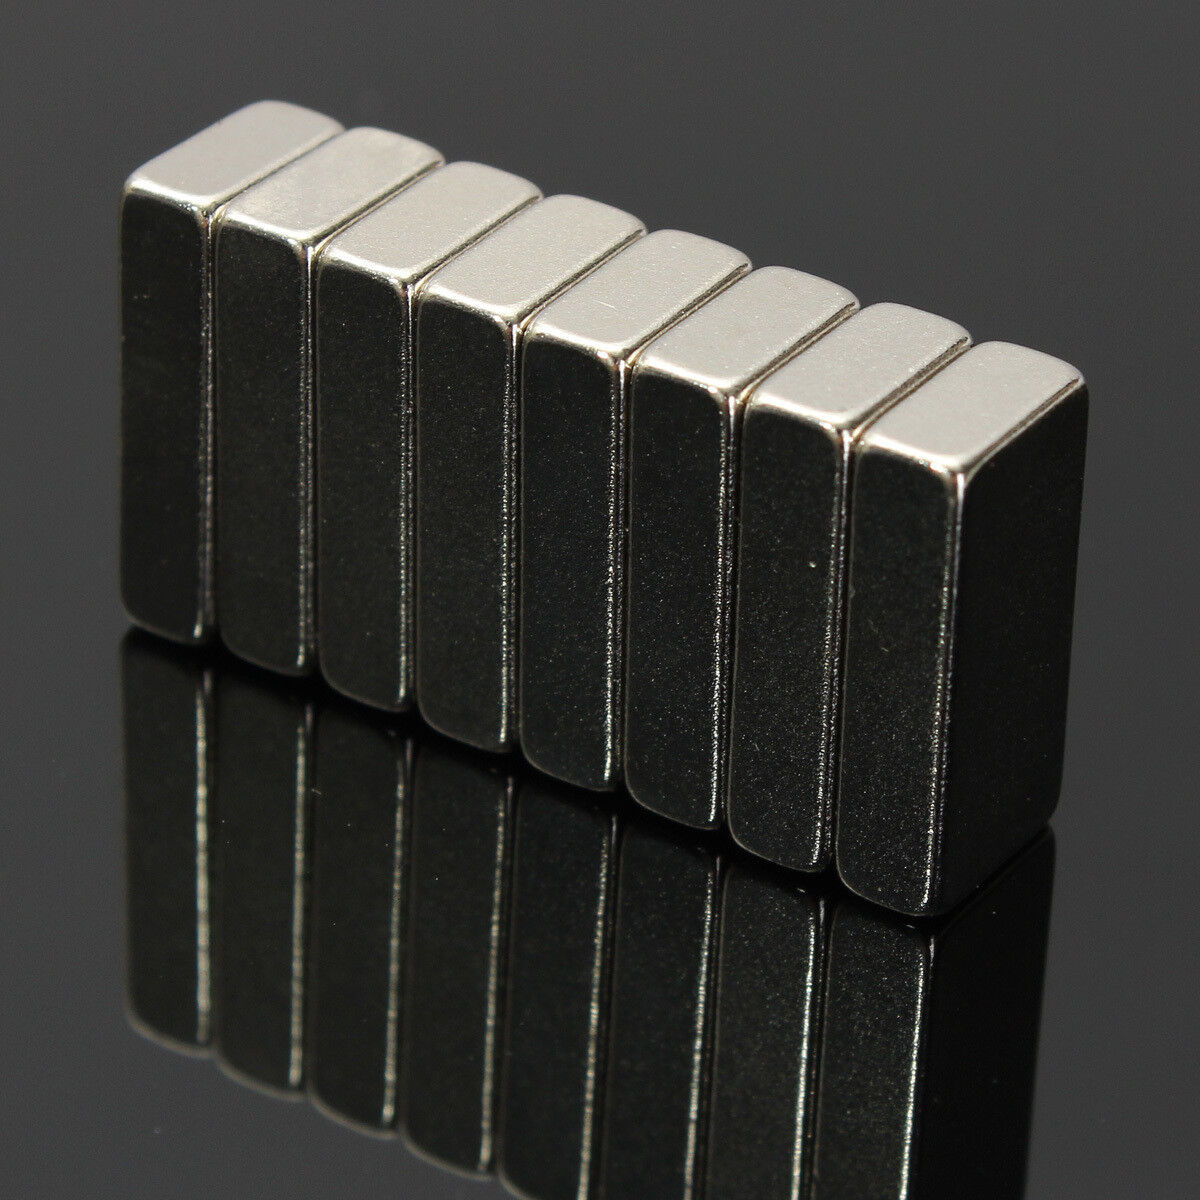 Super N52 Block Magnet Muti-size Strong Square Neodymium Rare Earth Magnets US